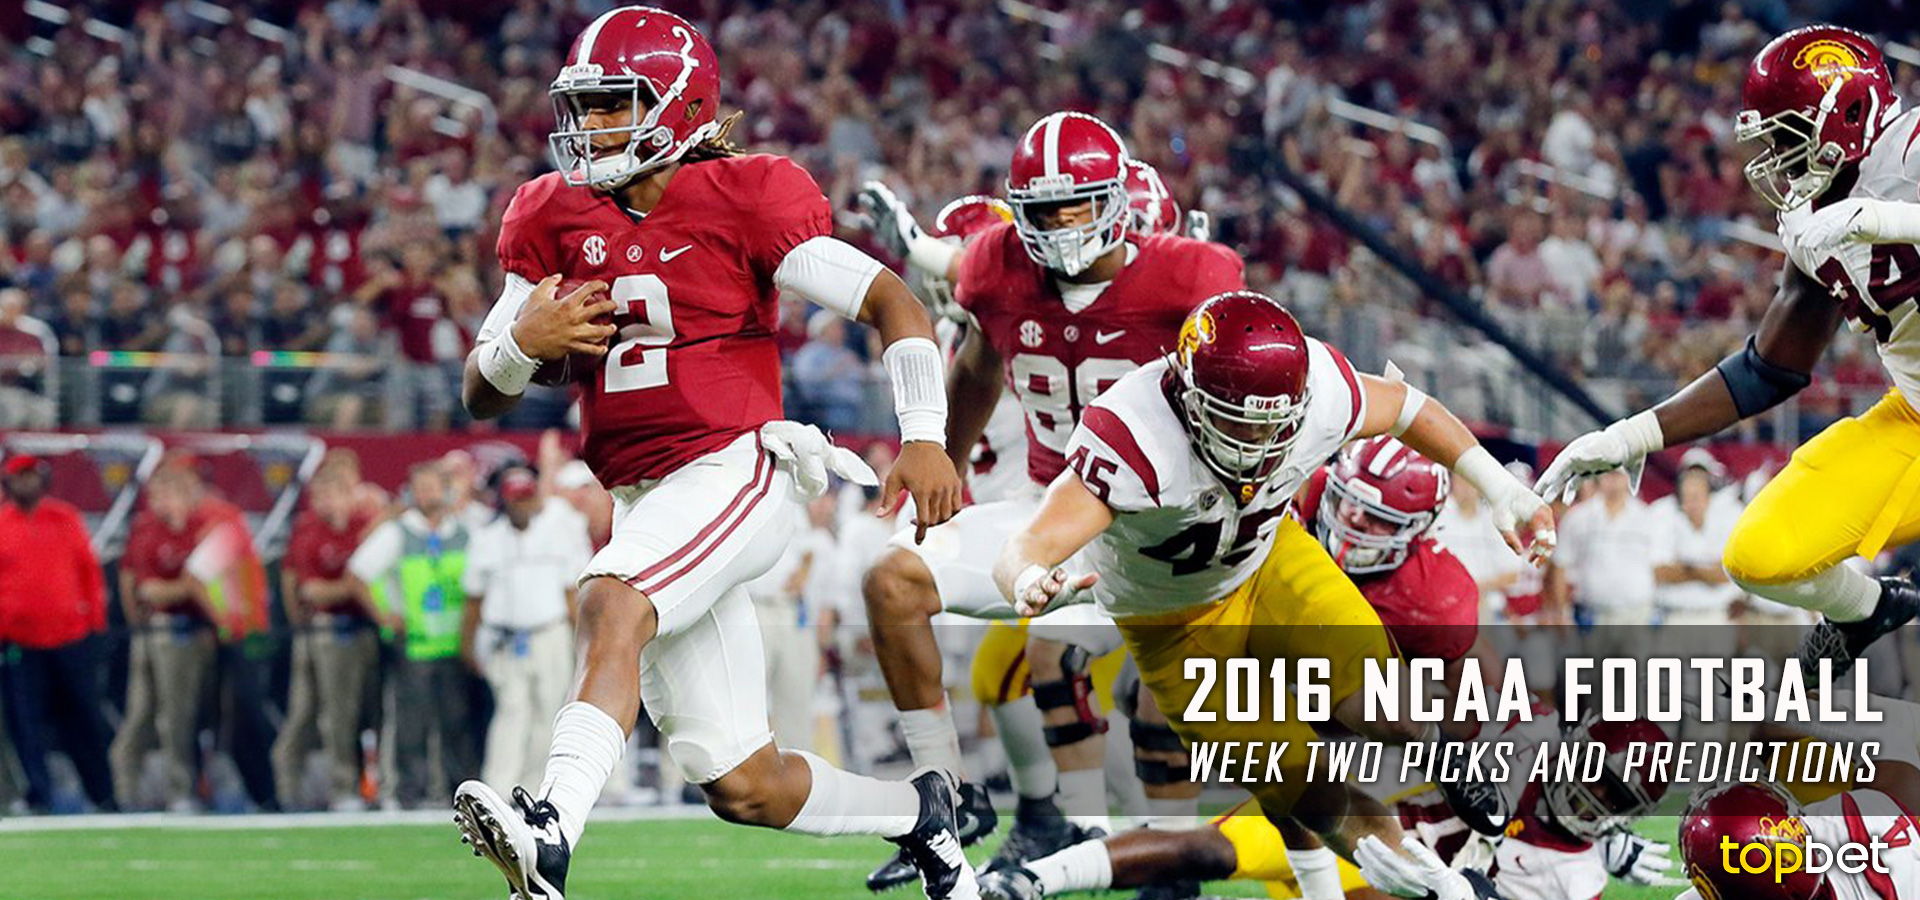 2016 ncaa football schedule college picks